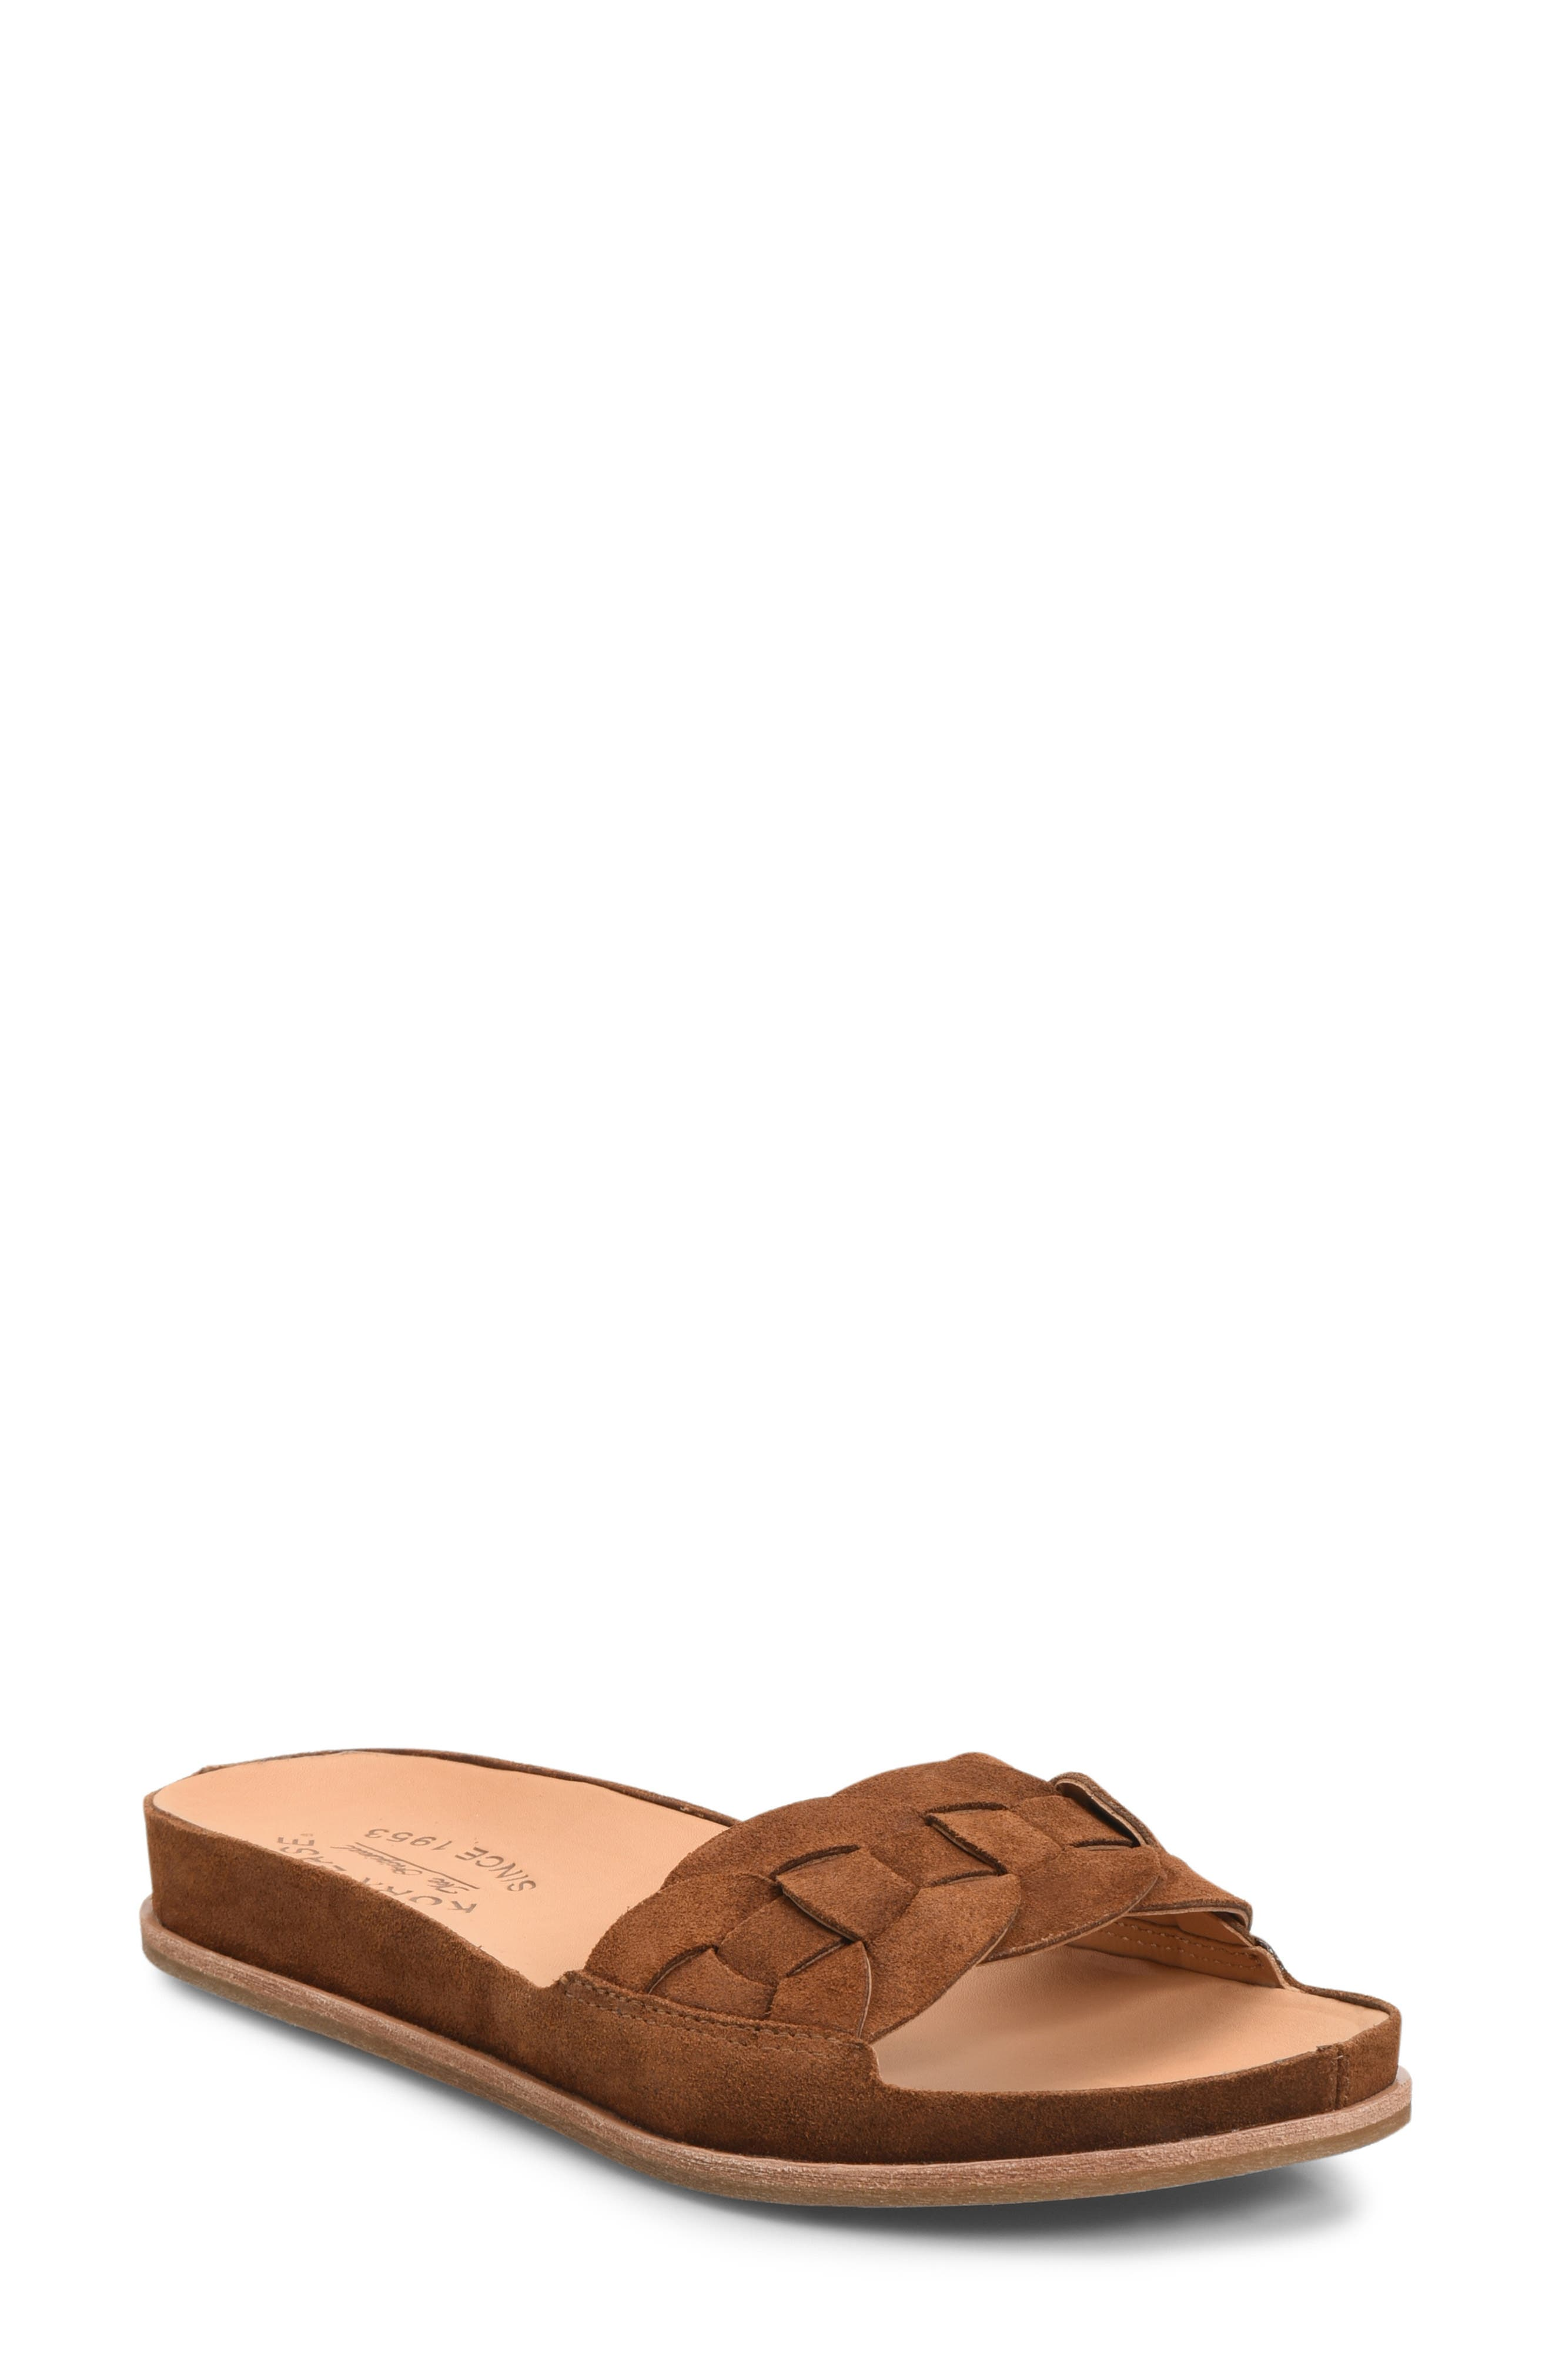 Boho-chic for the minimalist, this comfortable and arch-supportive flat sandal features a braided strap and wrapped midsole. Style Name: Kork-Ease Dolphin Slide Sandal (Women). Style Number: 5789539. Available in stores.